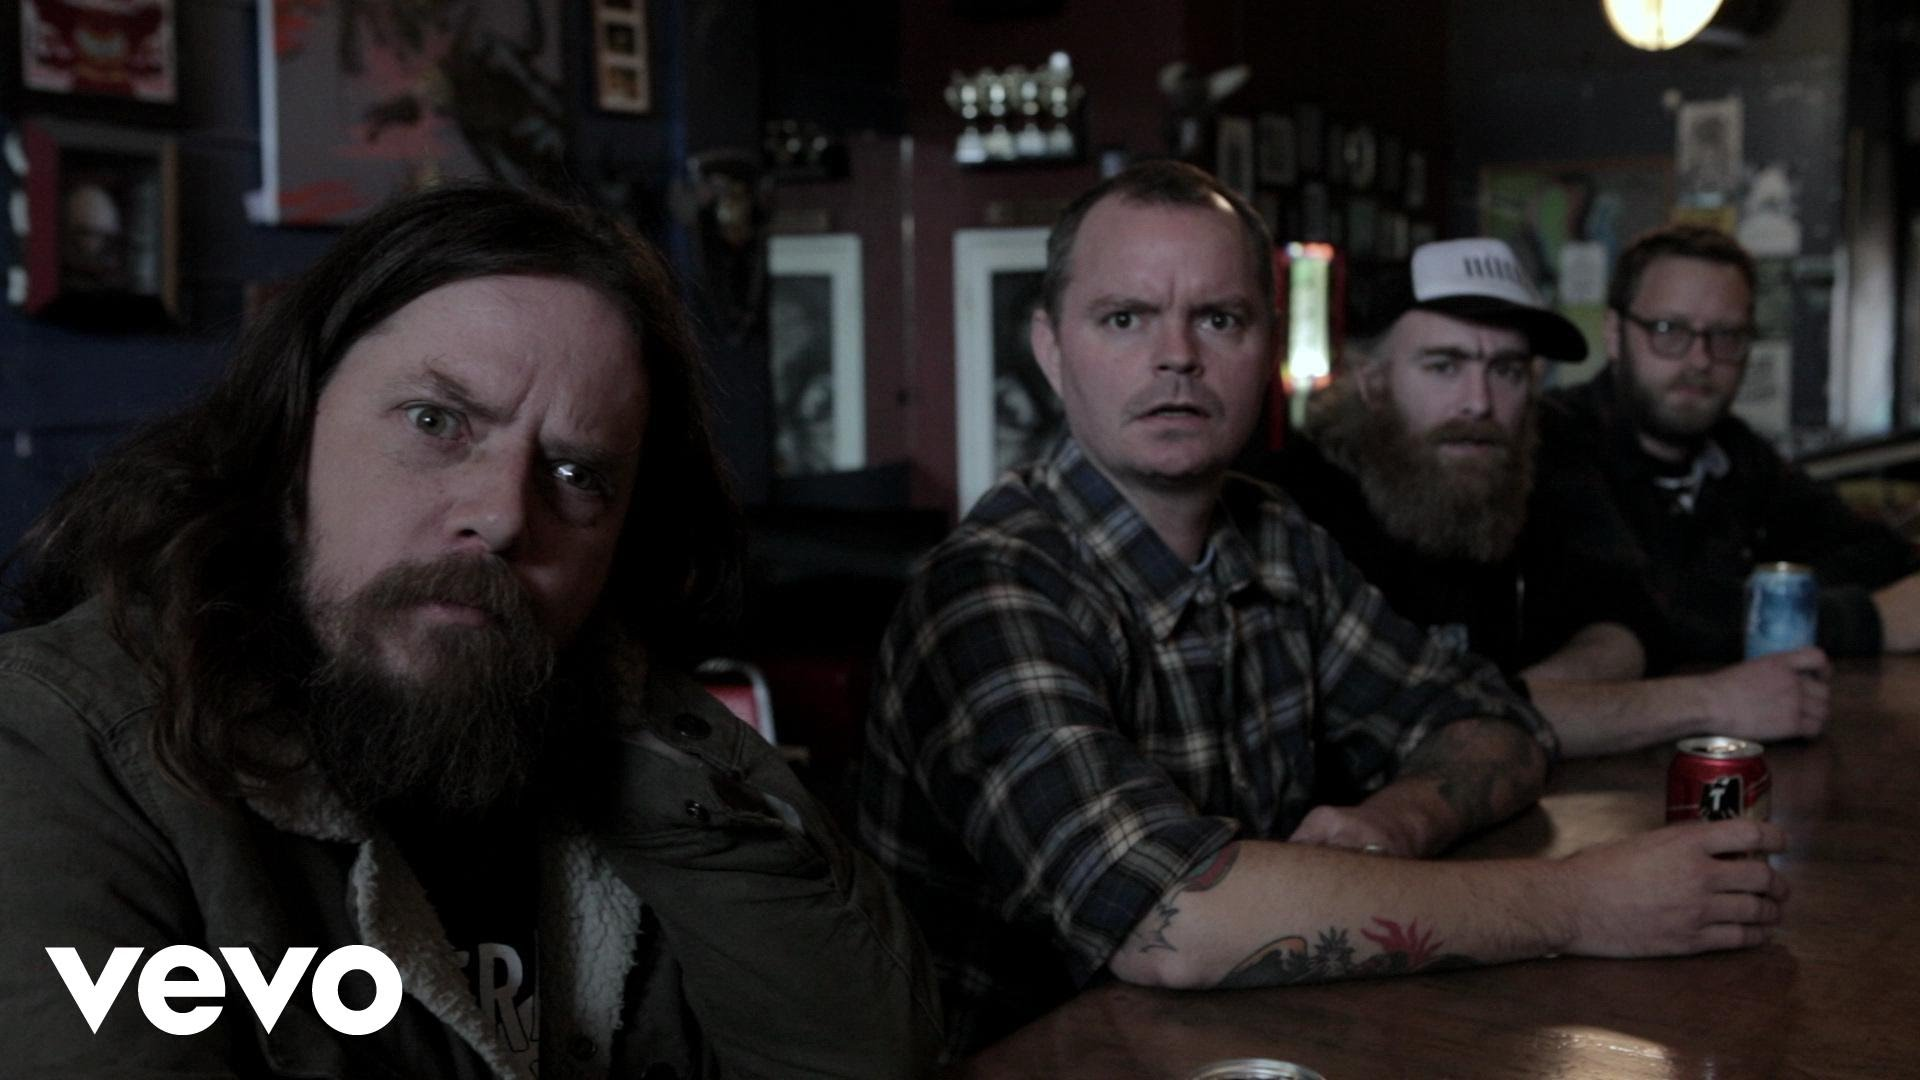 Red Fang announce 2018 fall headlining tour with Big Business and Dead Now